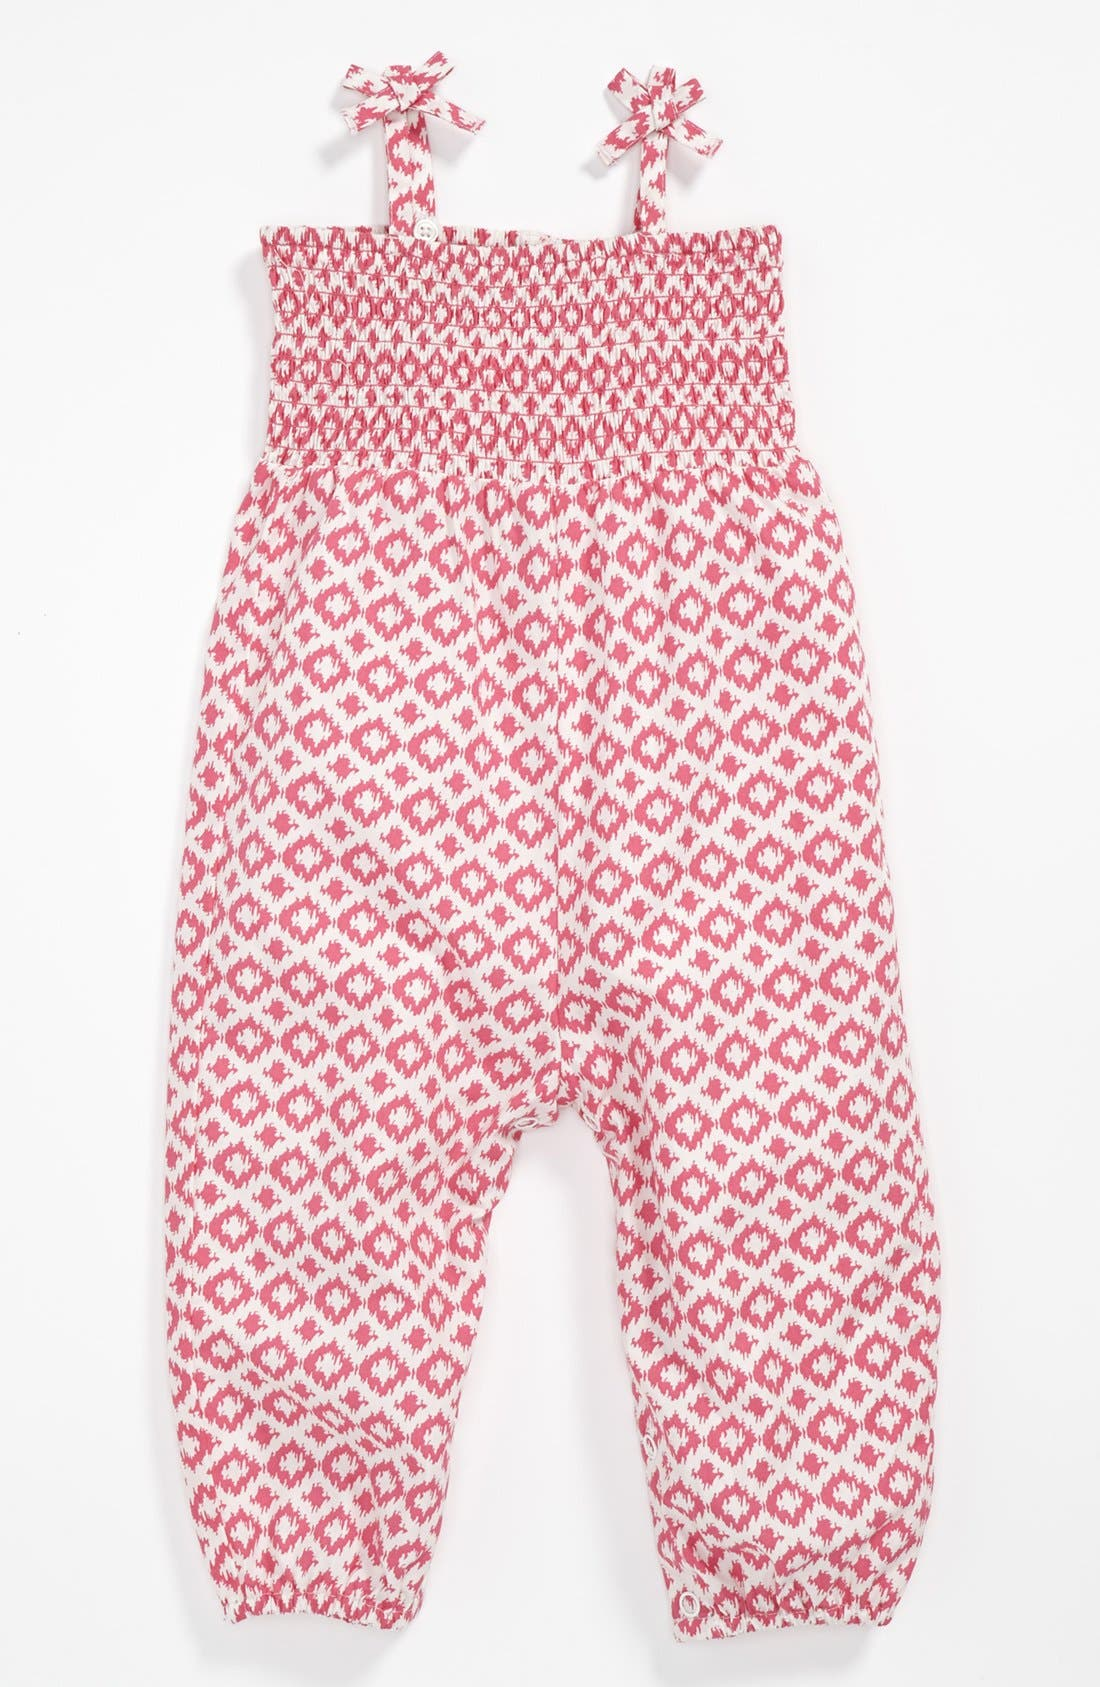 Alternate Image 1 Selected - Nordstrom Baby Printed Lawn Coveralls (Baby Girls)